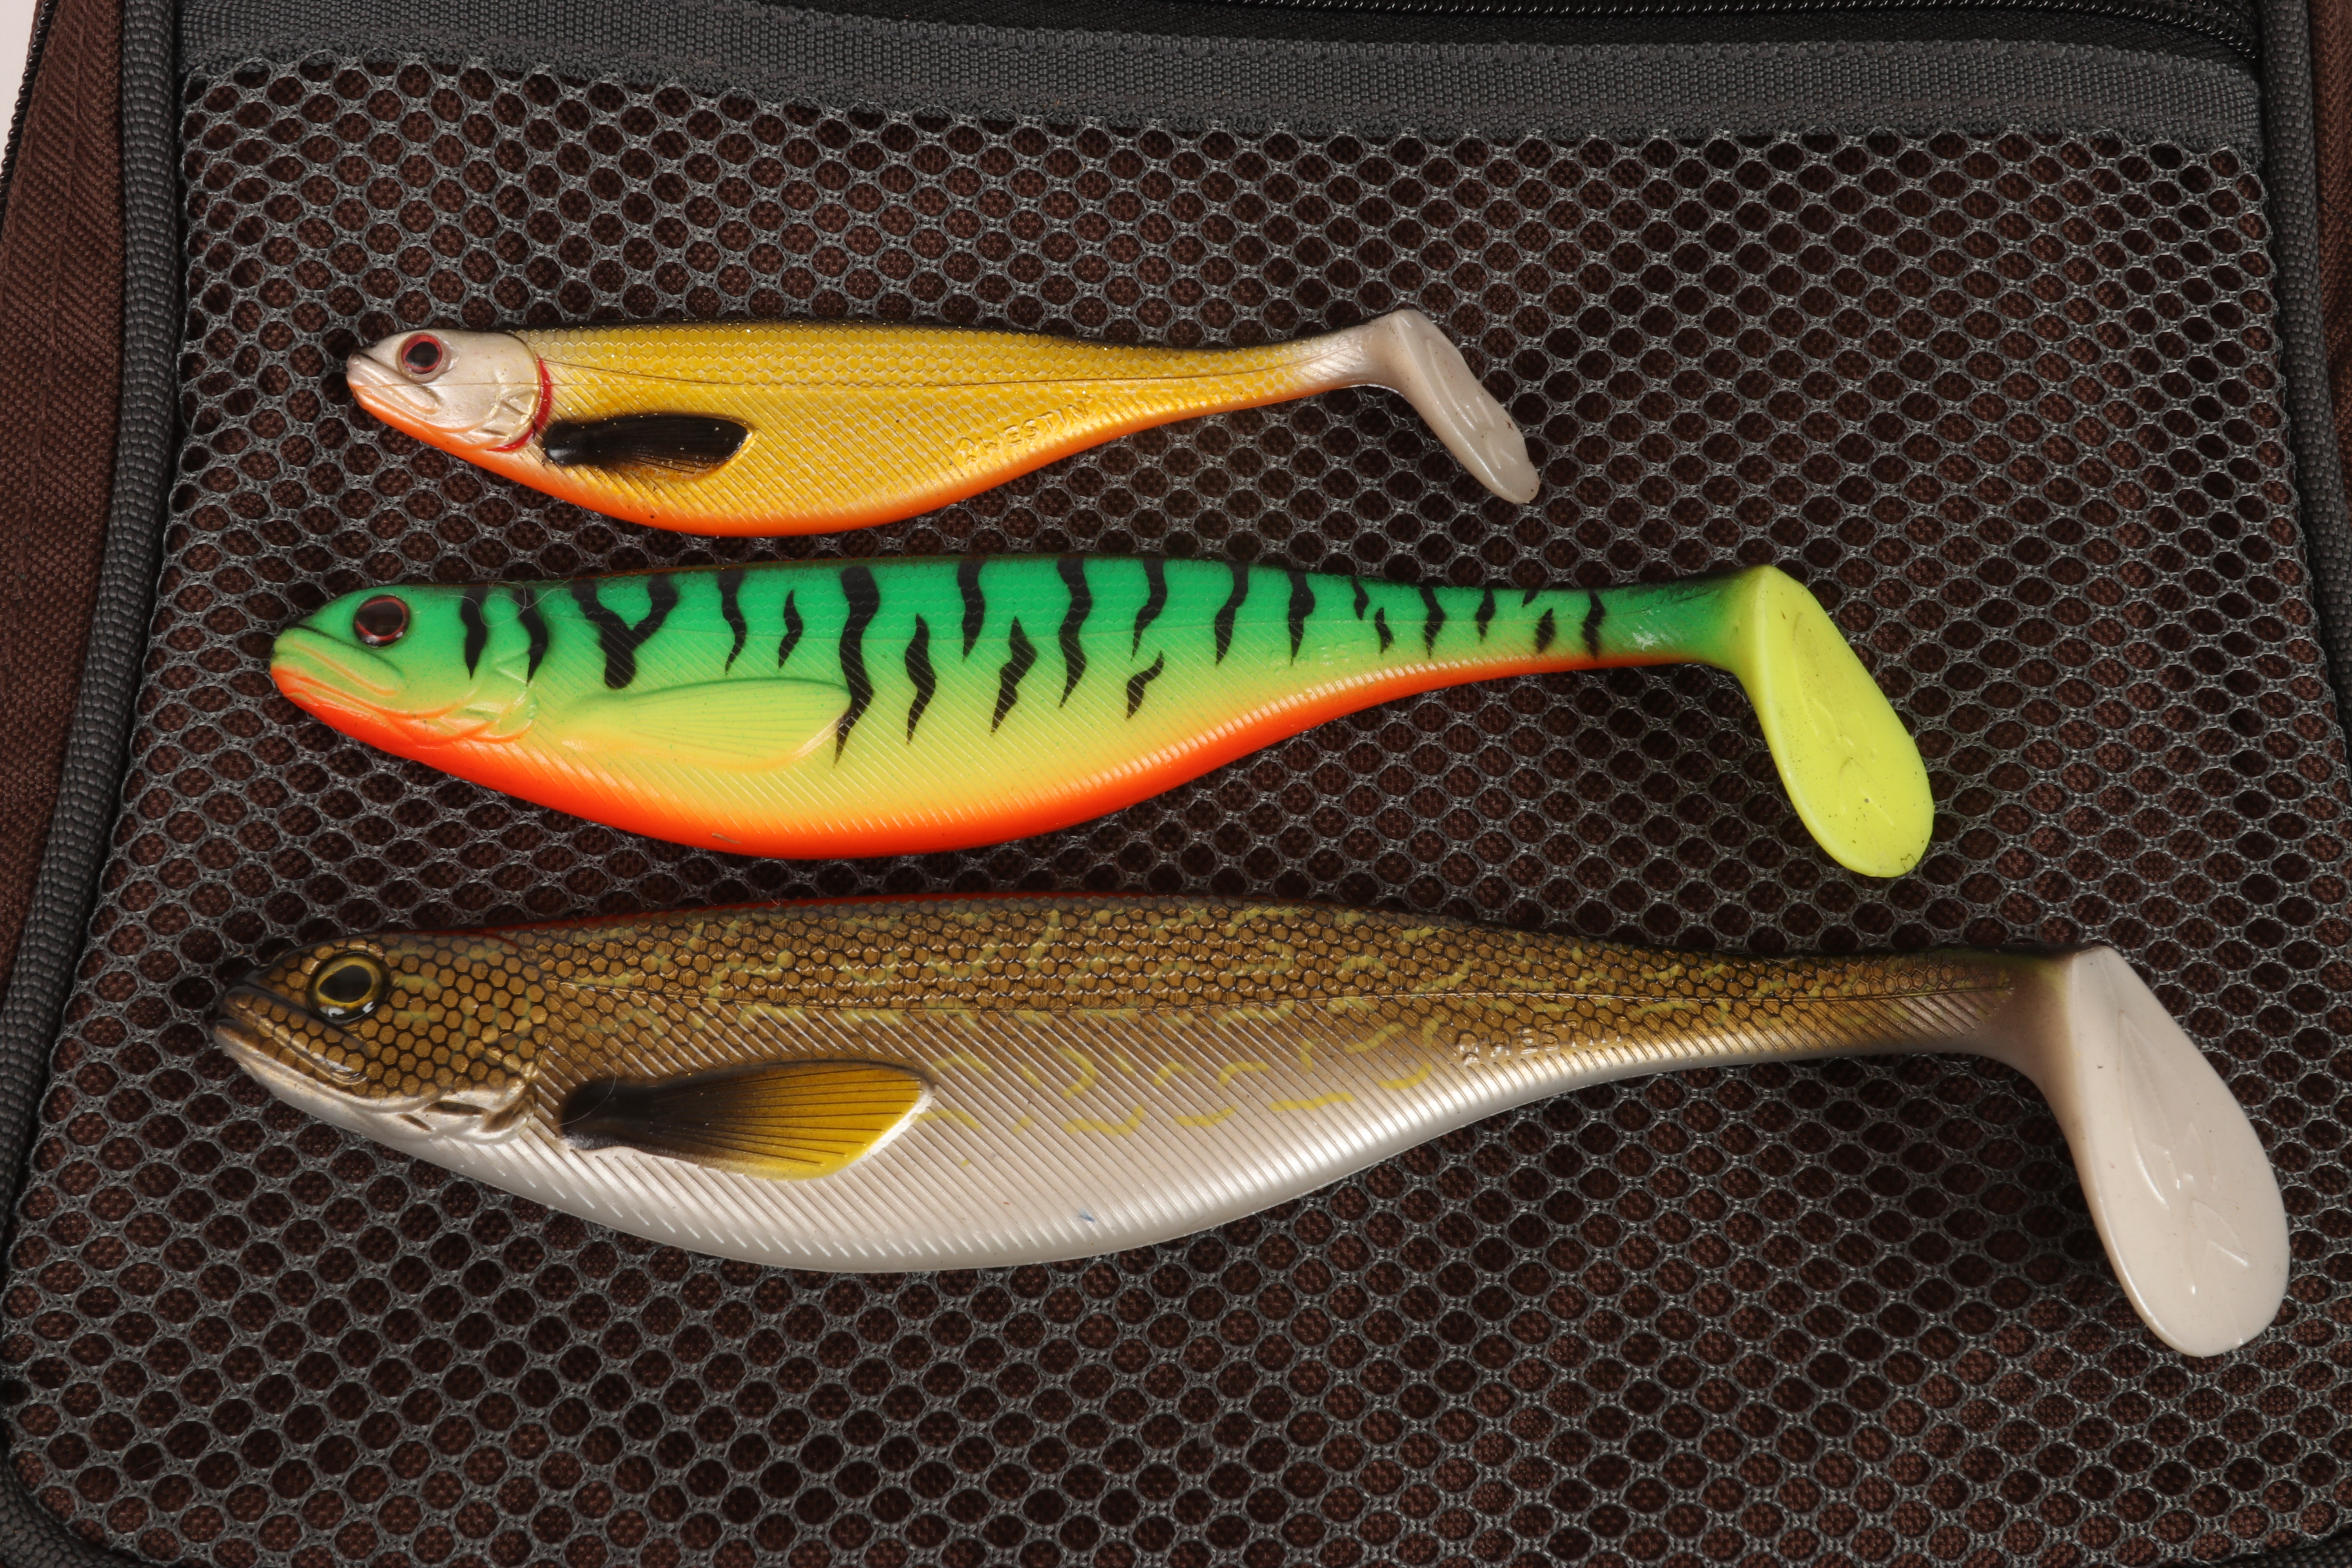 """30 pre-rigged soft plastic fishing lures BRAND NEW 4/"""" long tail lure"""